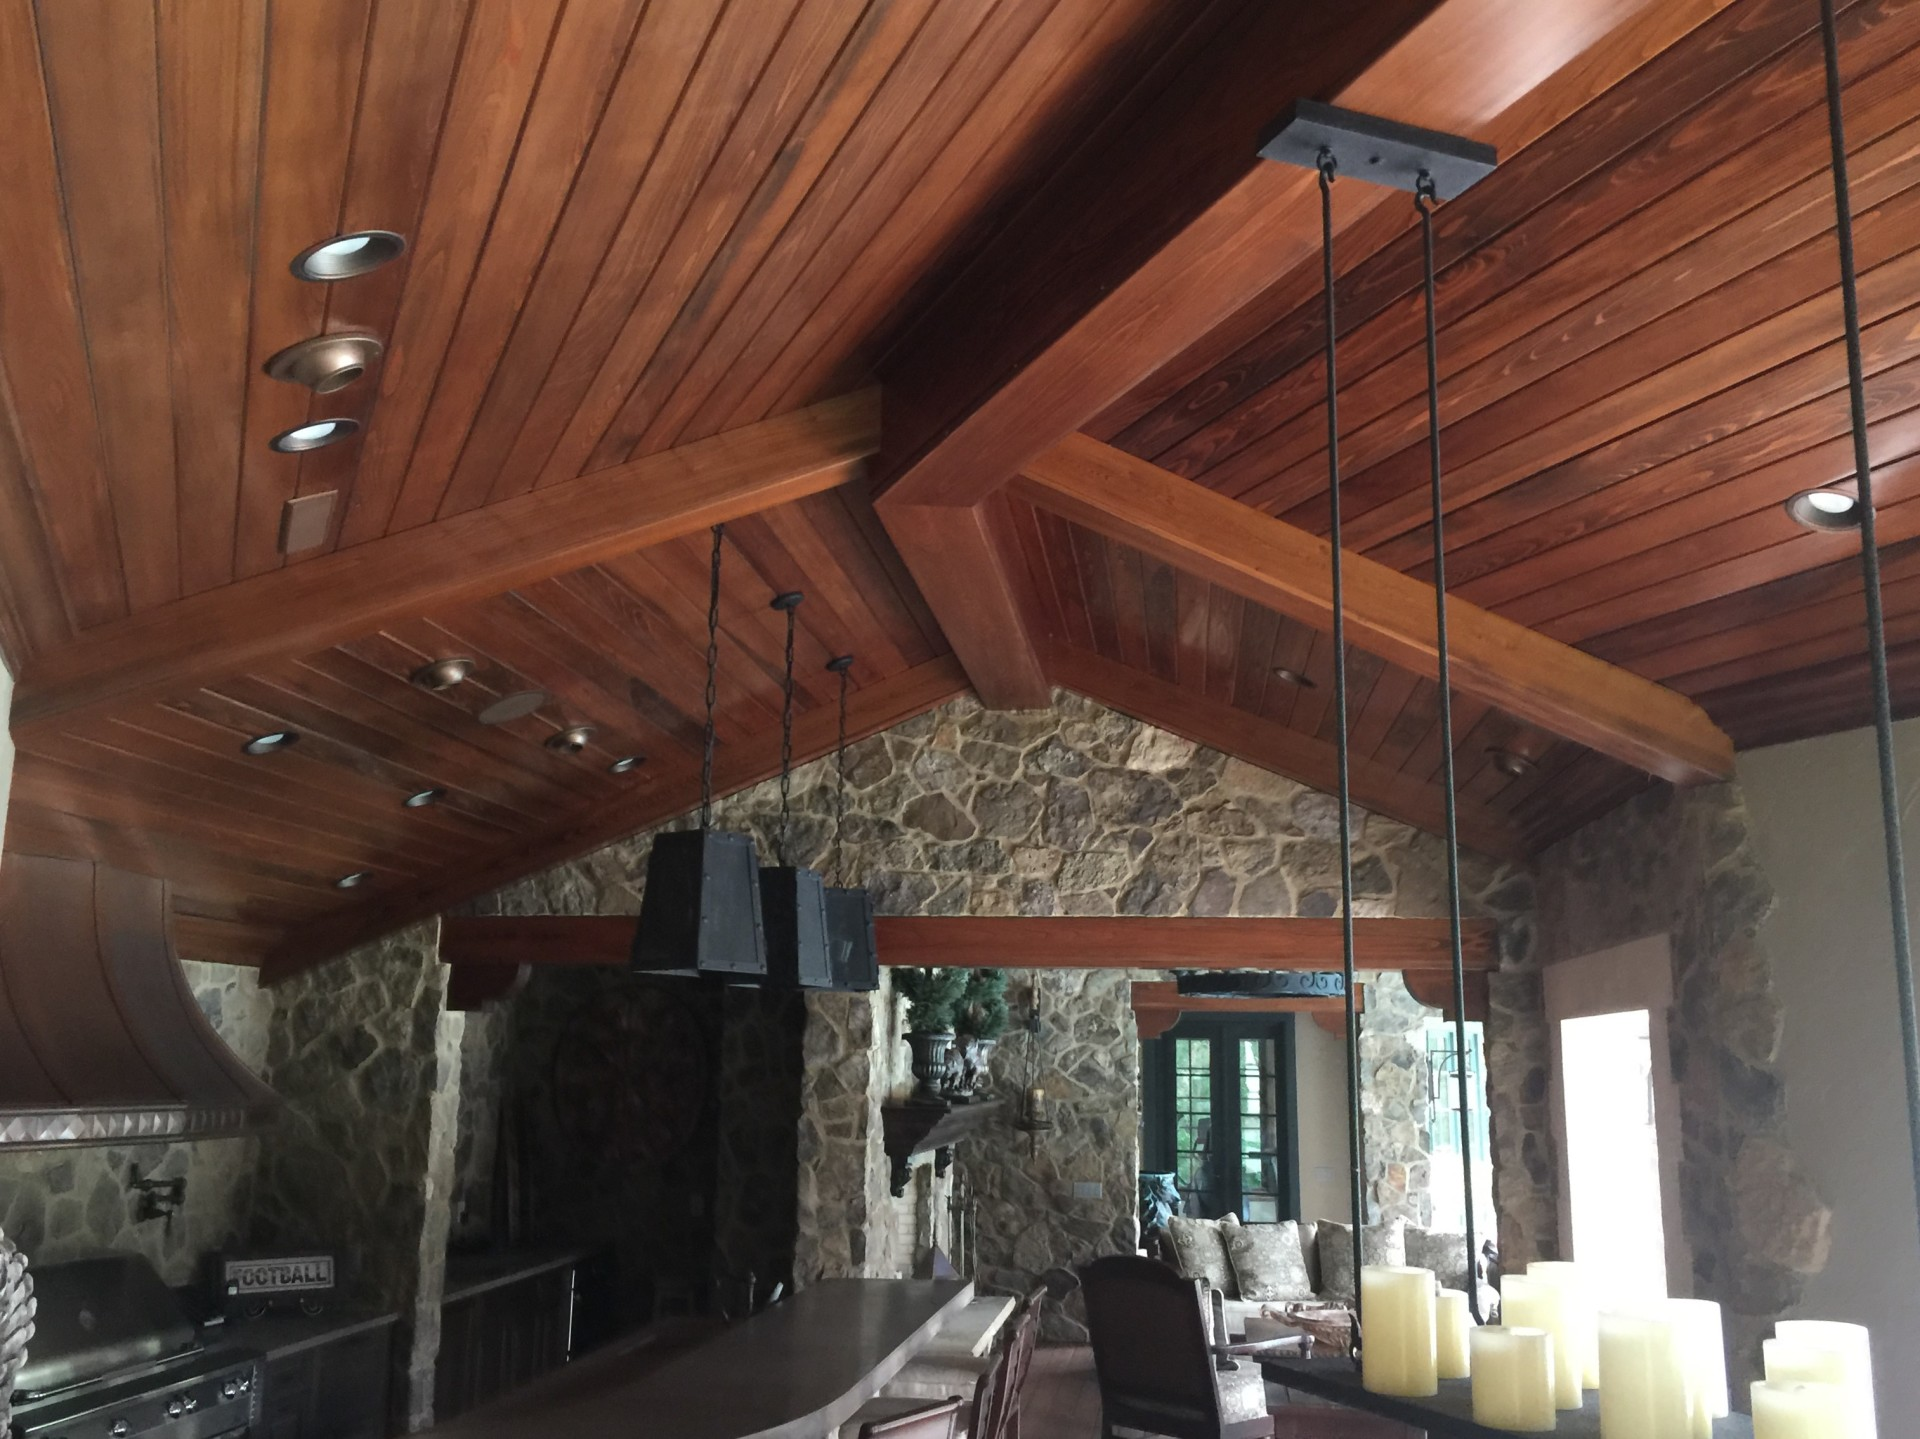 Ceiling Treatment and Beams